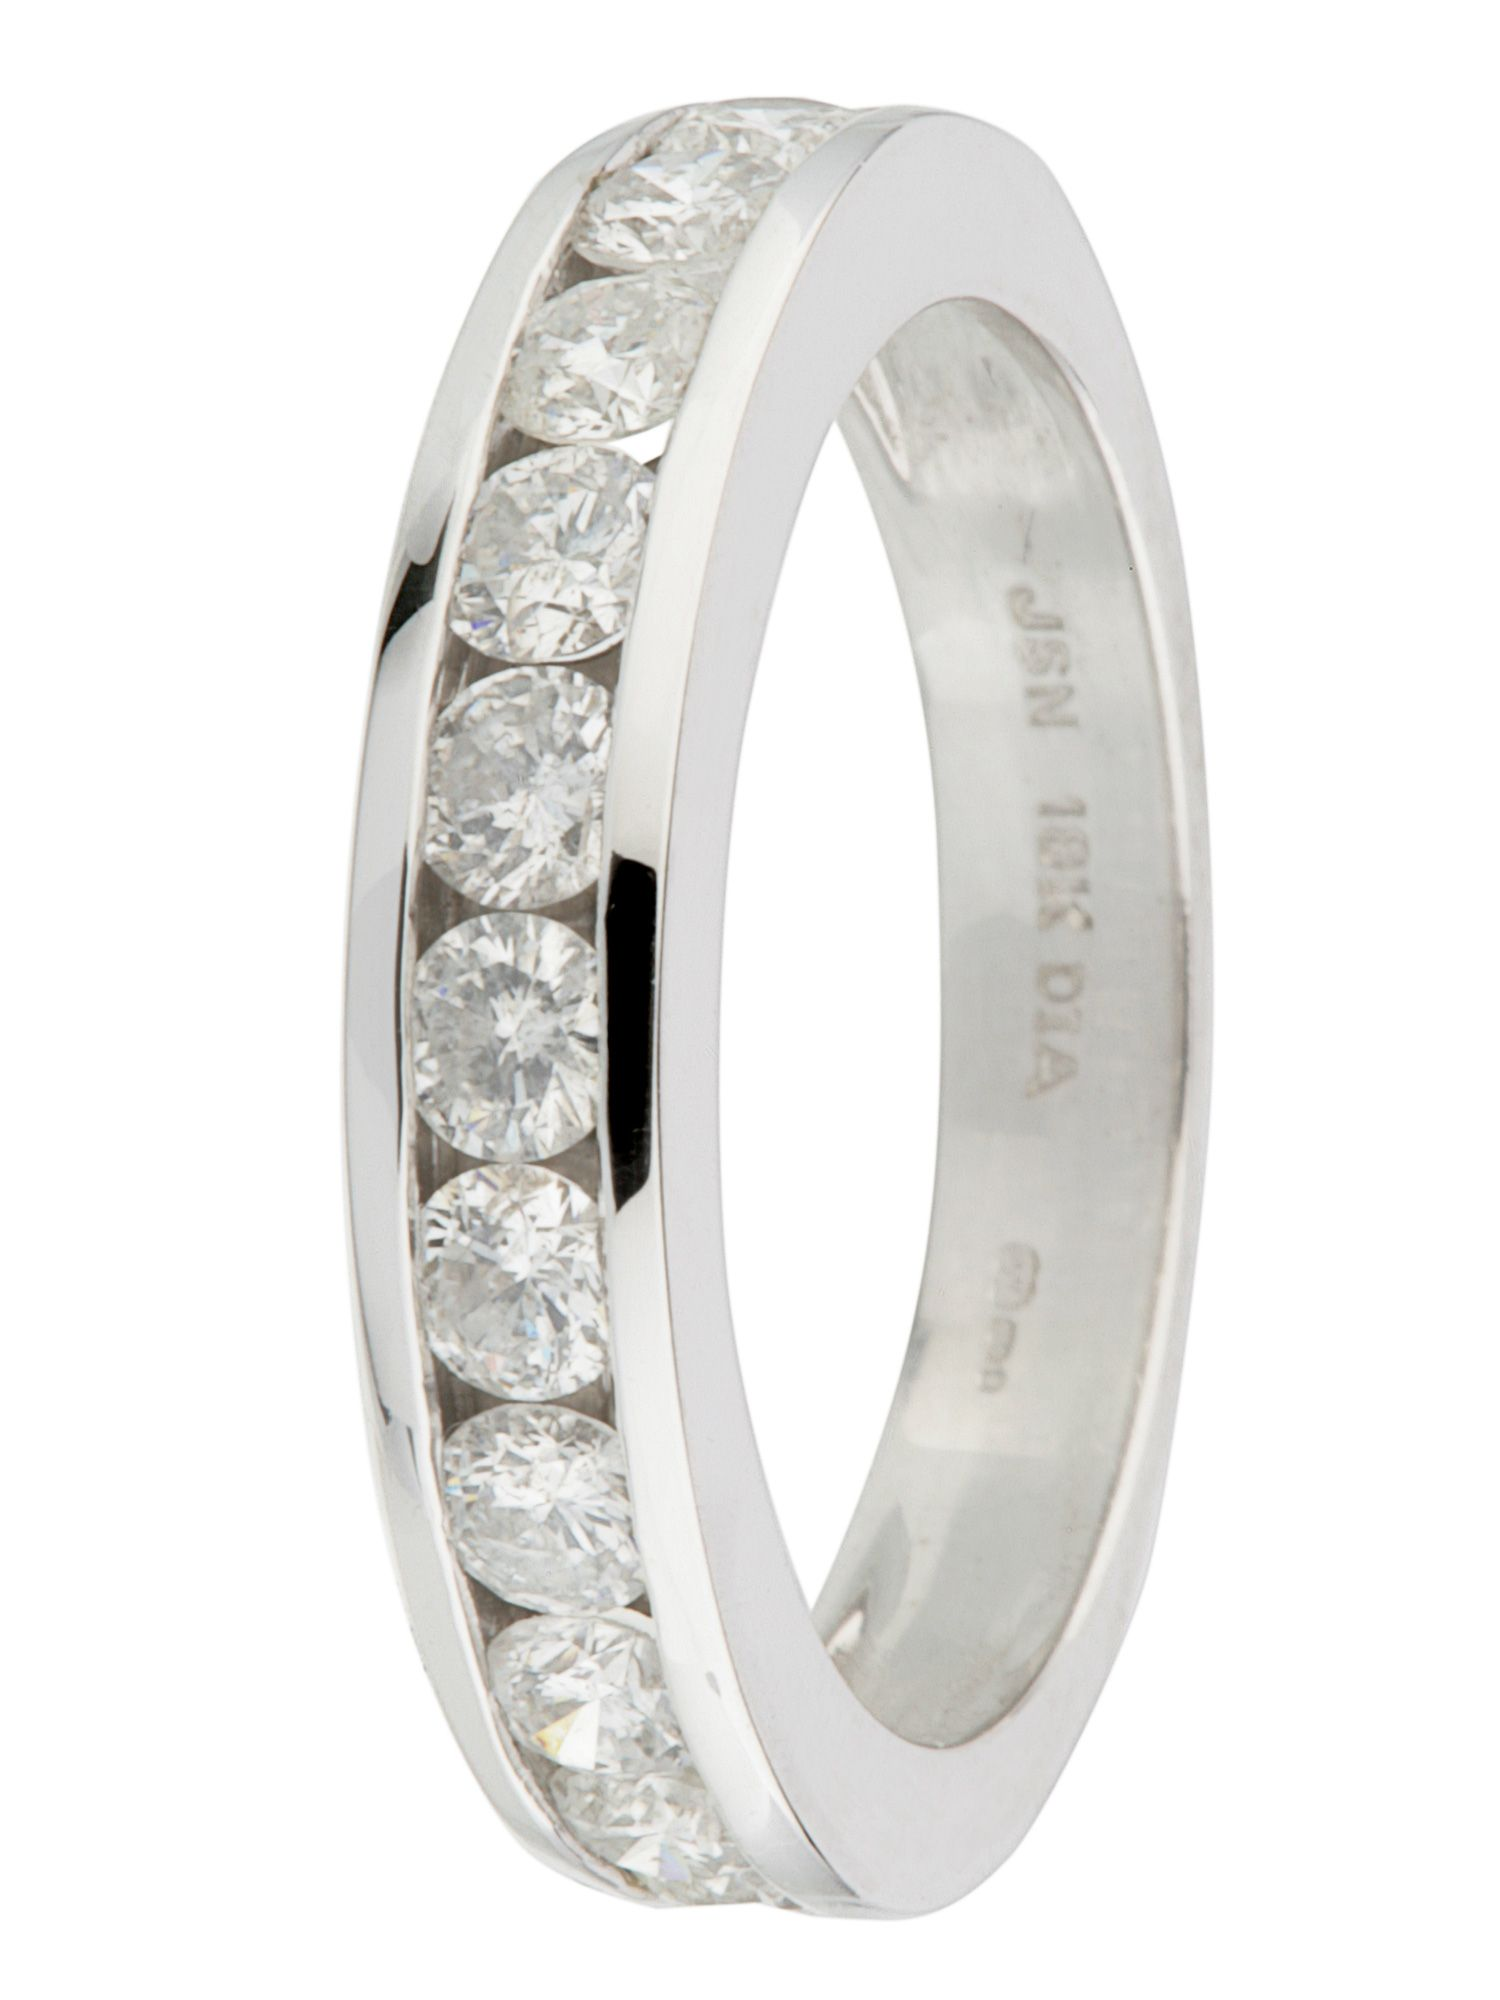 Goldsmiths 18ct gold 12 stone 1.00ct diamond ring, White Gold